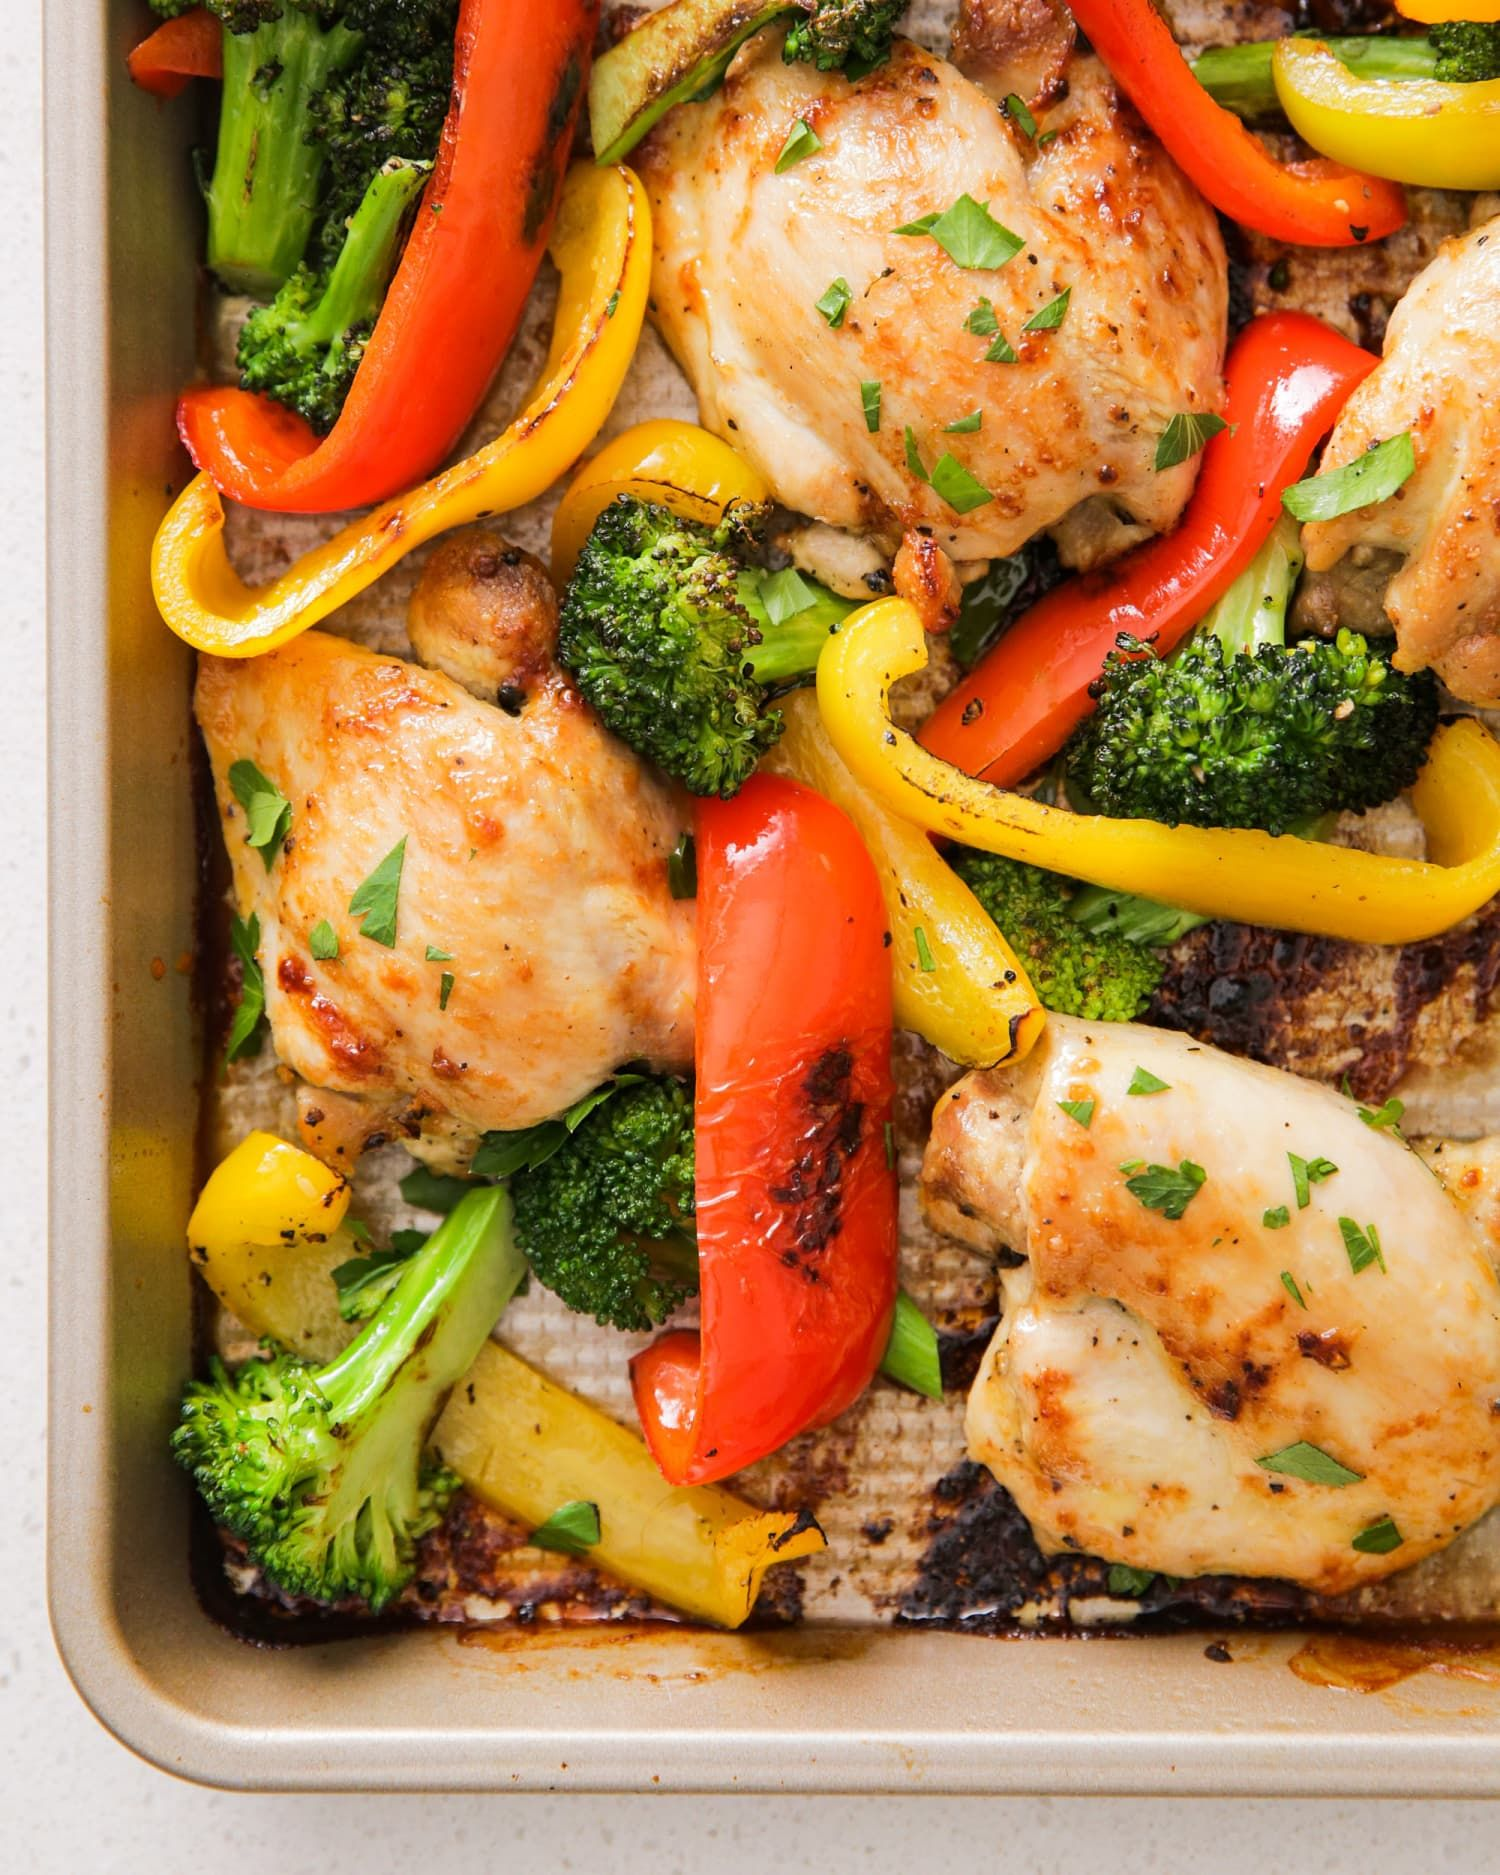 Sheet Pan Dinner With Chicken Thighs And Potatoes: 10 Easy Sheet Pan Dinners That Practically Make Themselves